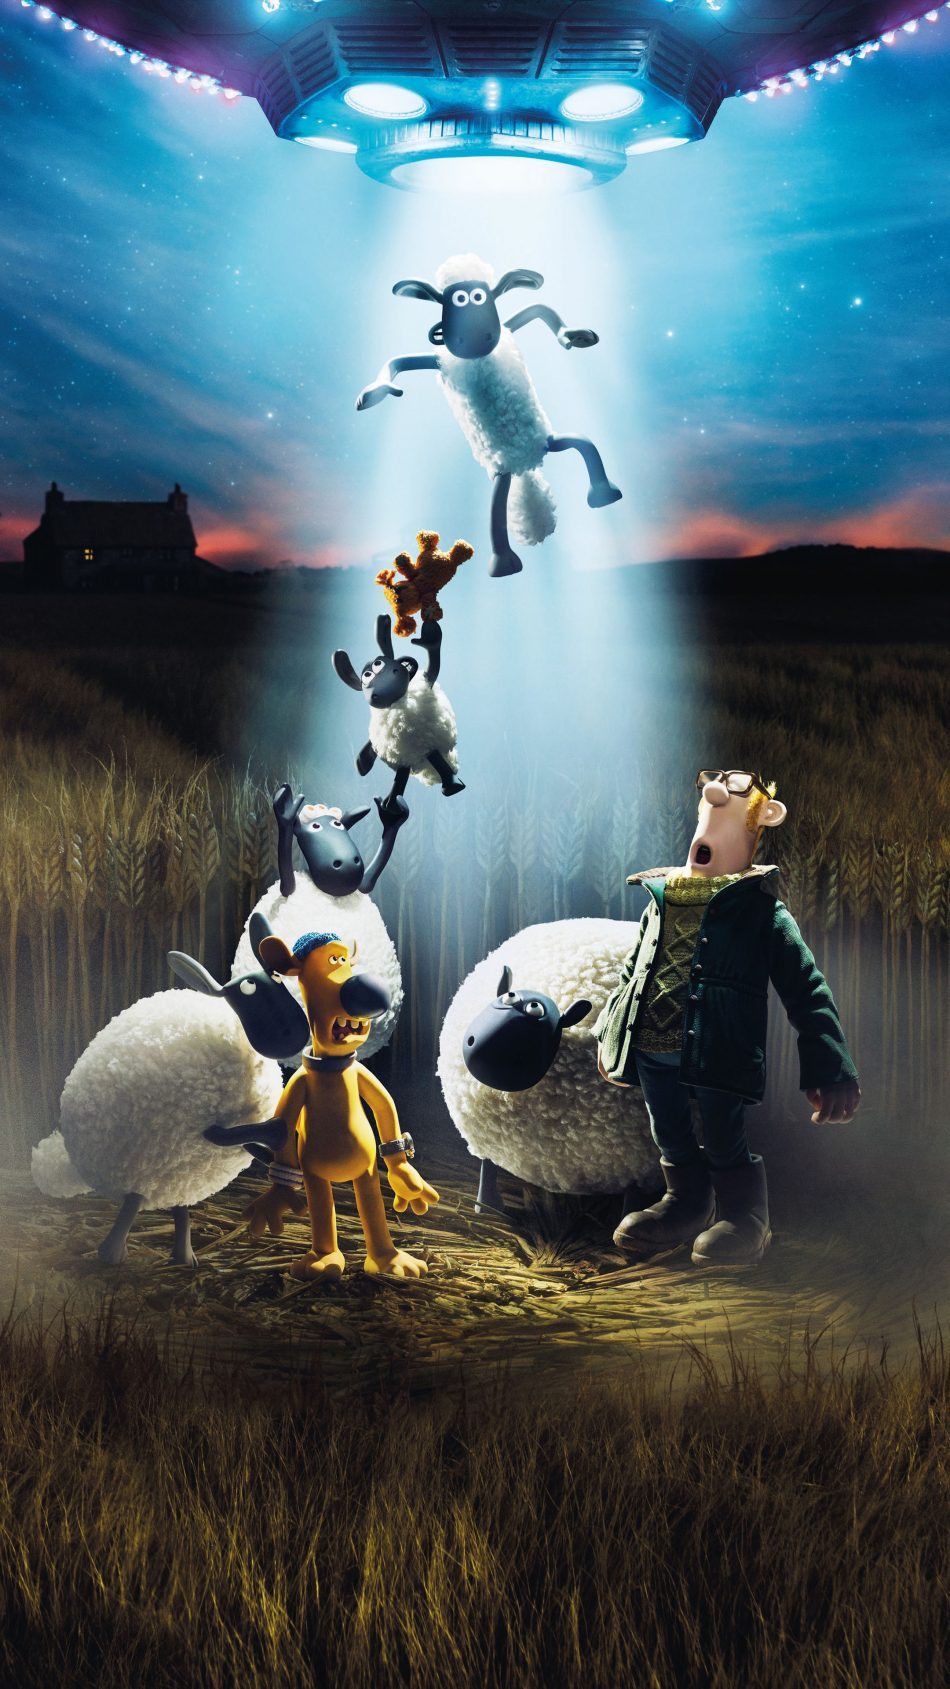 shaun the sheep movie free download